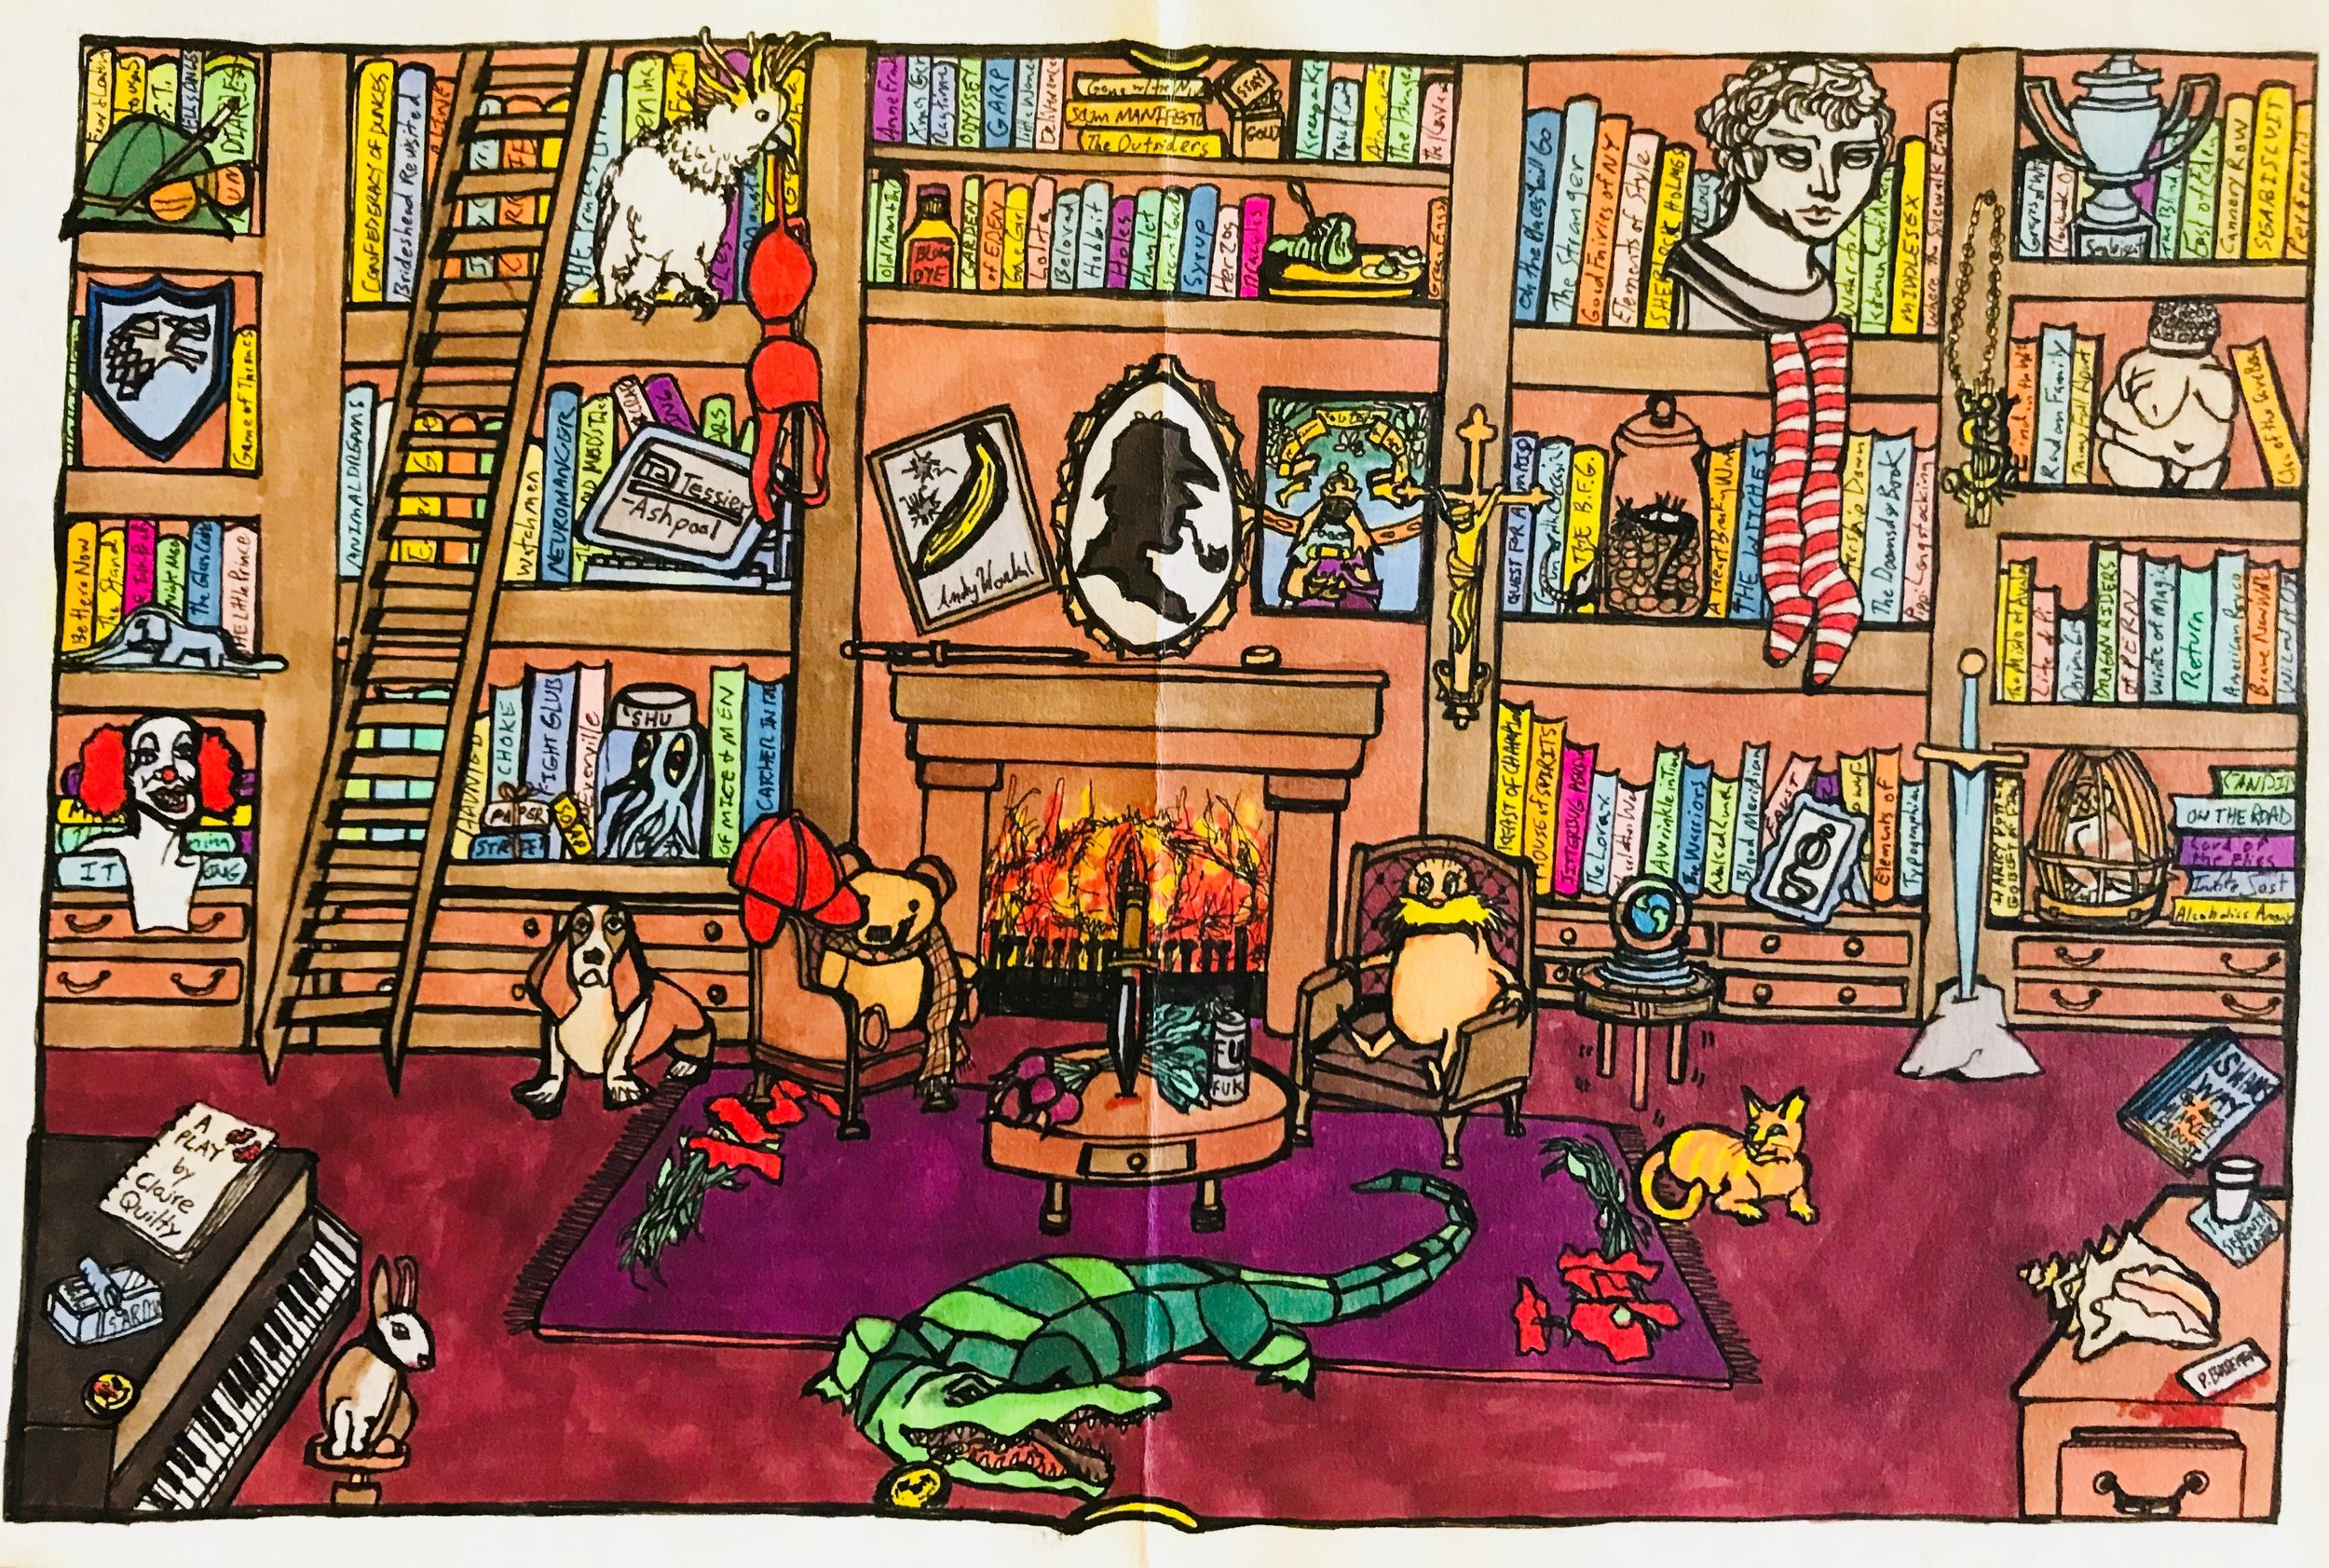 What's Your Favorite Book? (2015) / Inside Panel